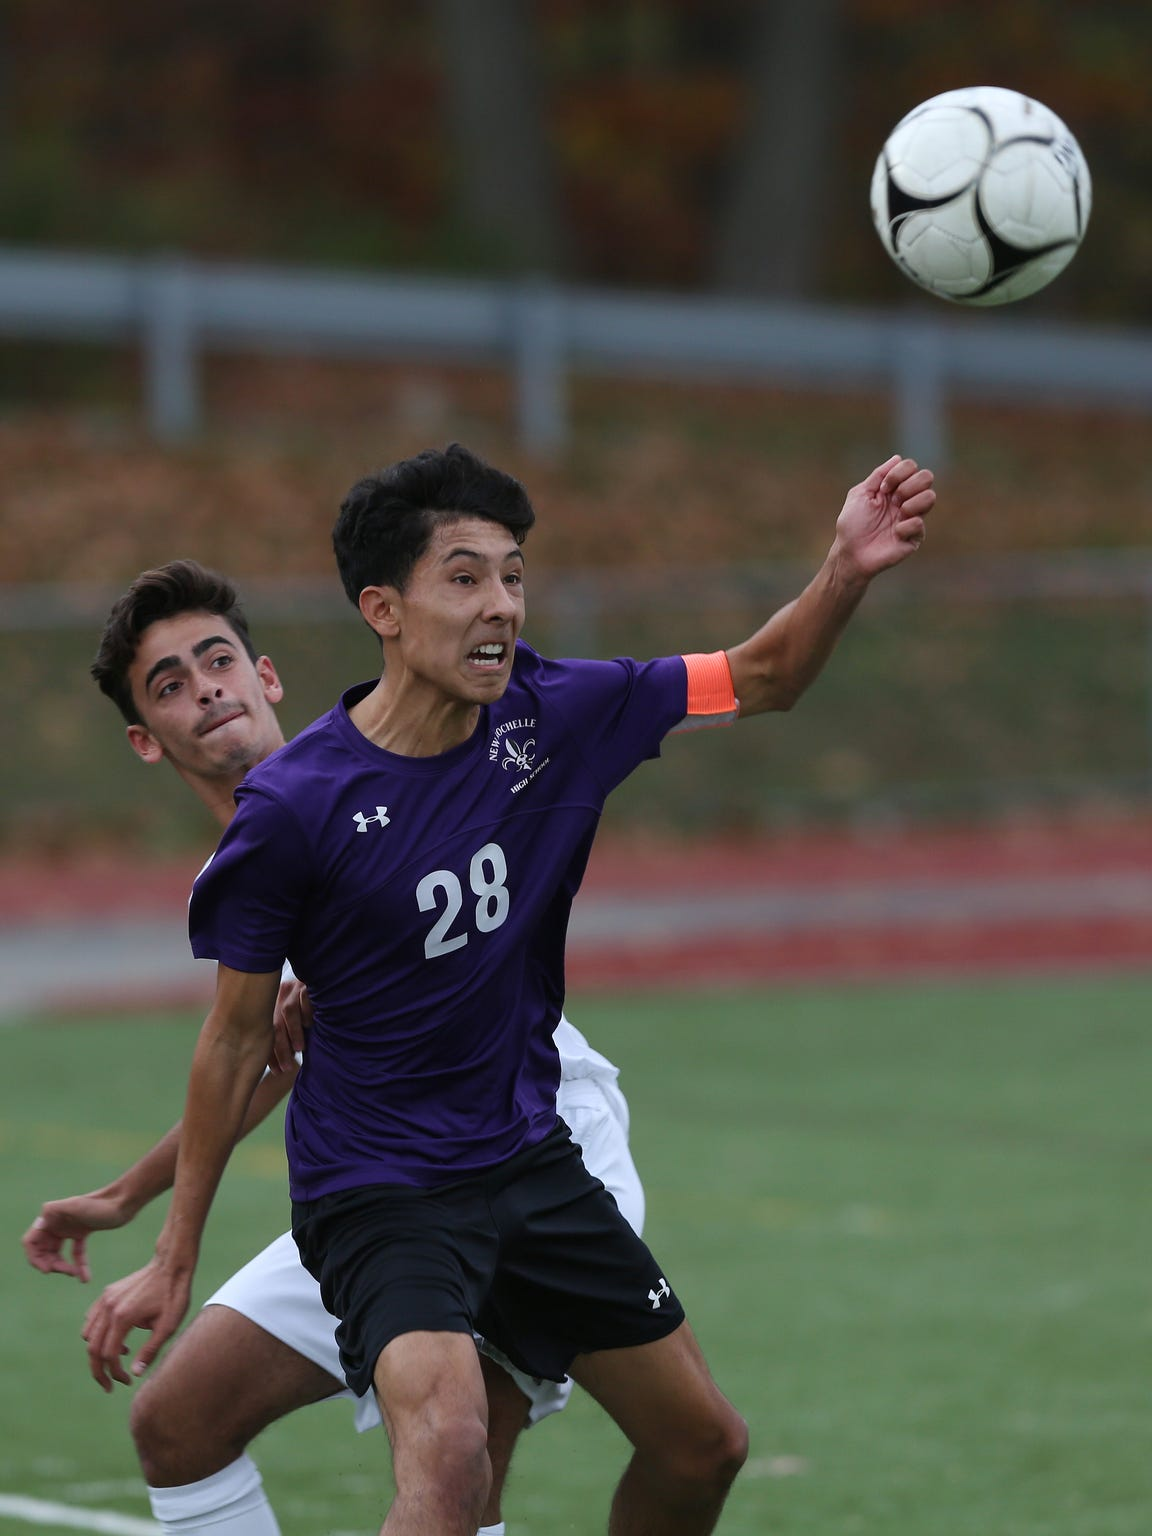 New Rochelle defeated Arlington 3-0 in the boys soccer